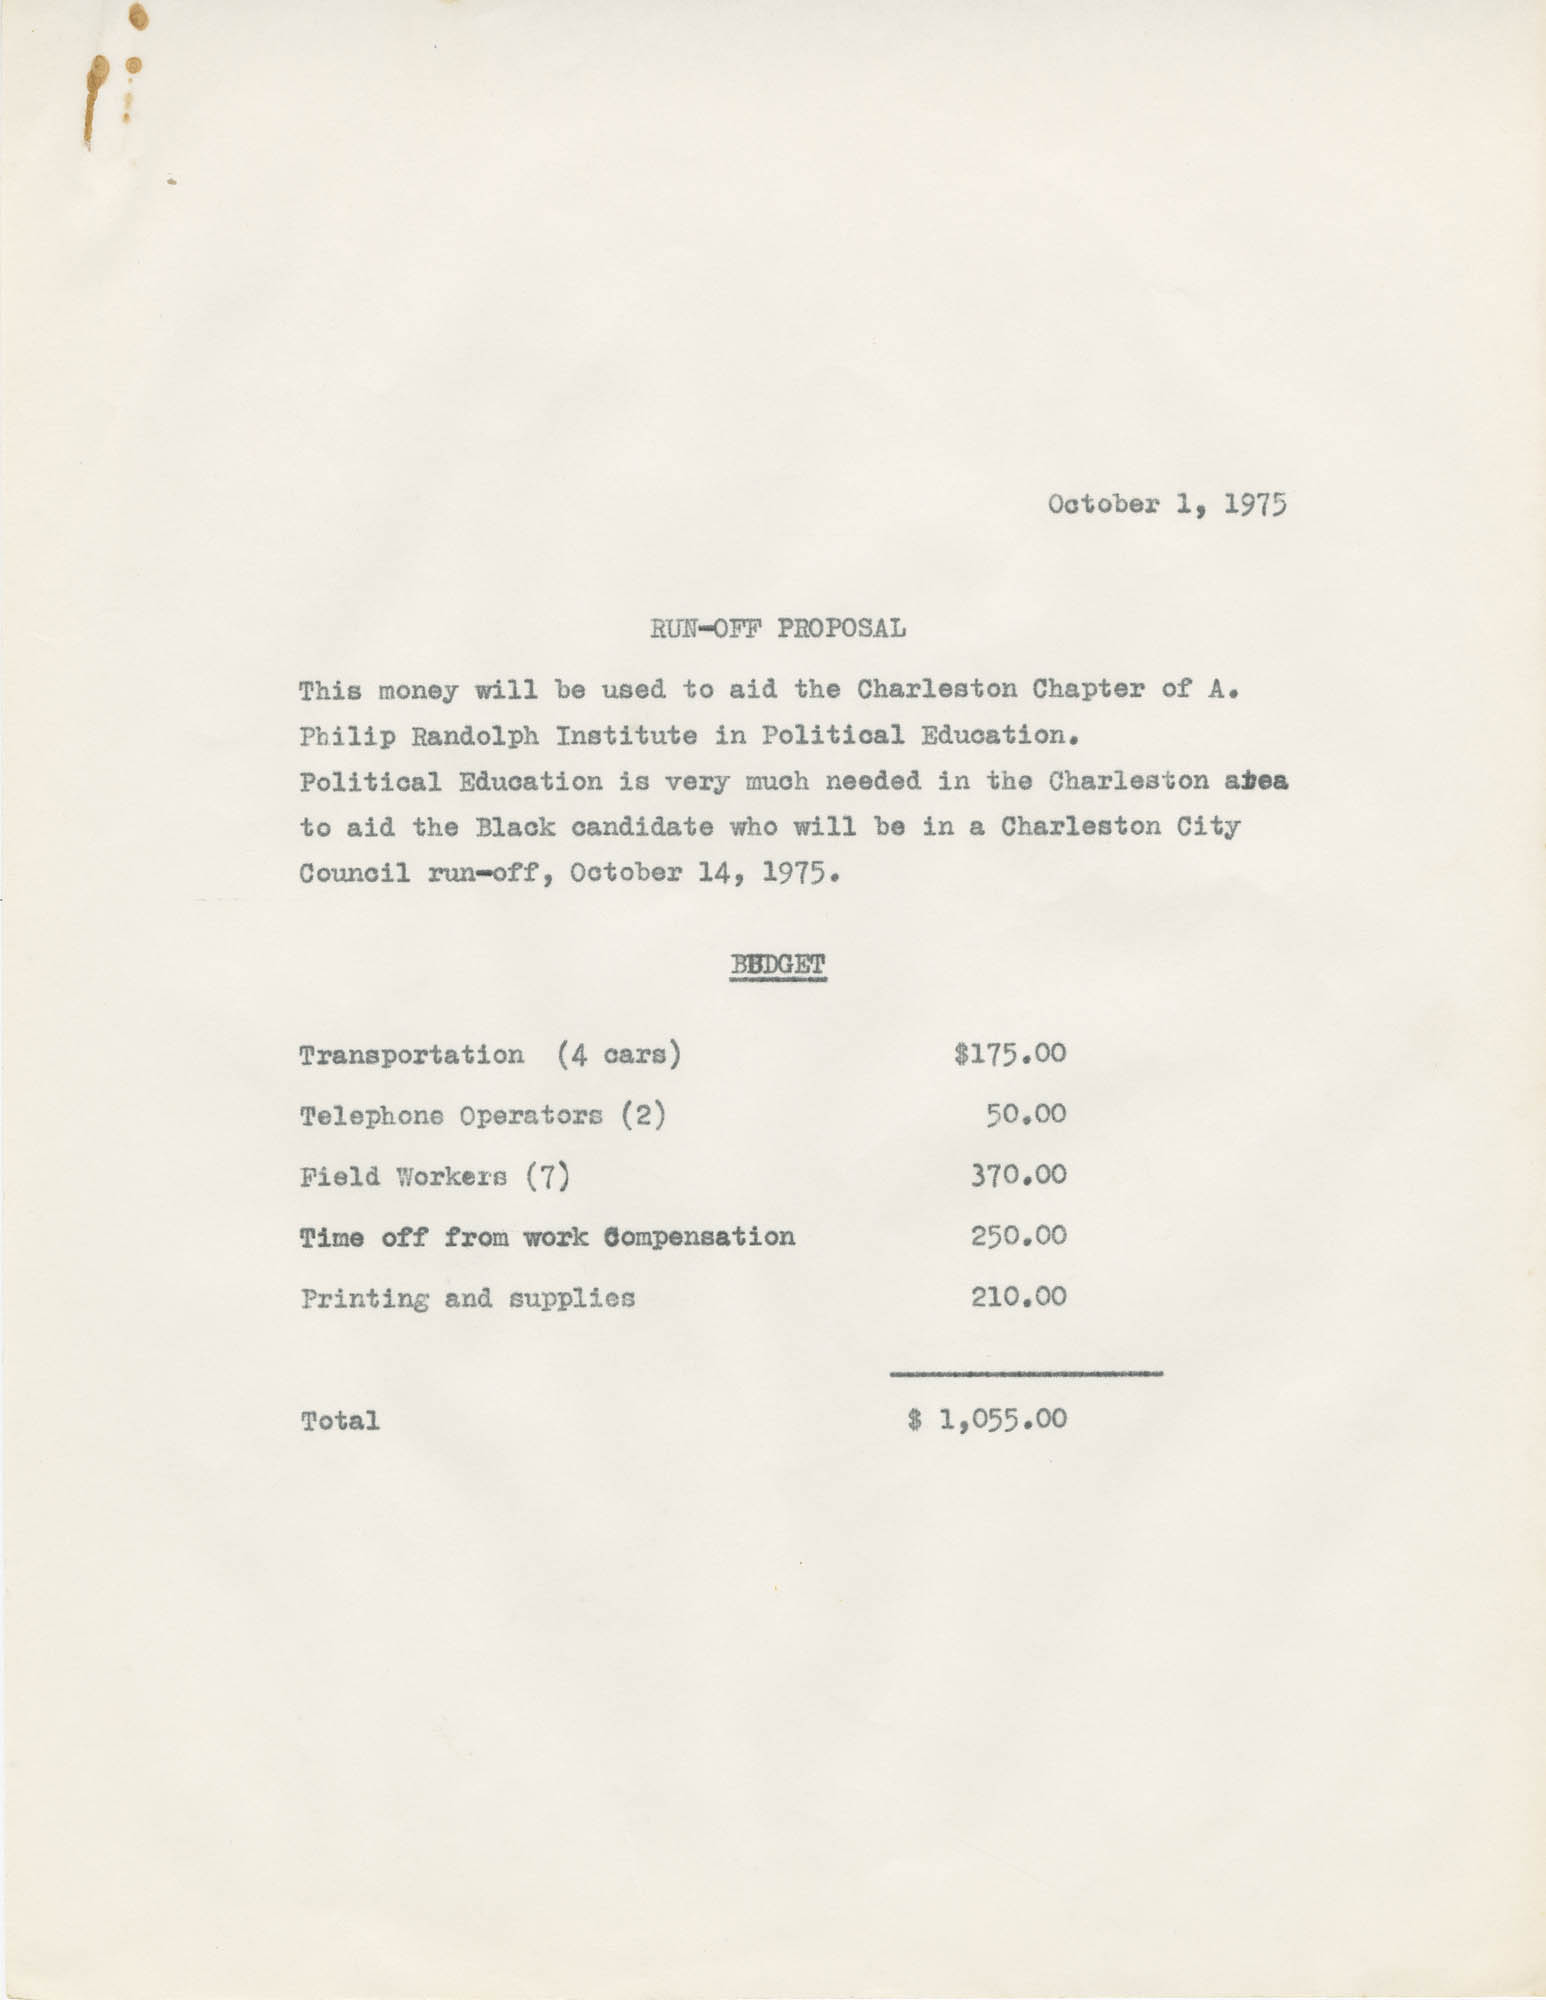 Budget for Charleston City Council run-off election activities in October of 1975